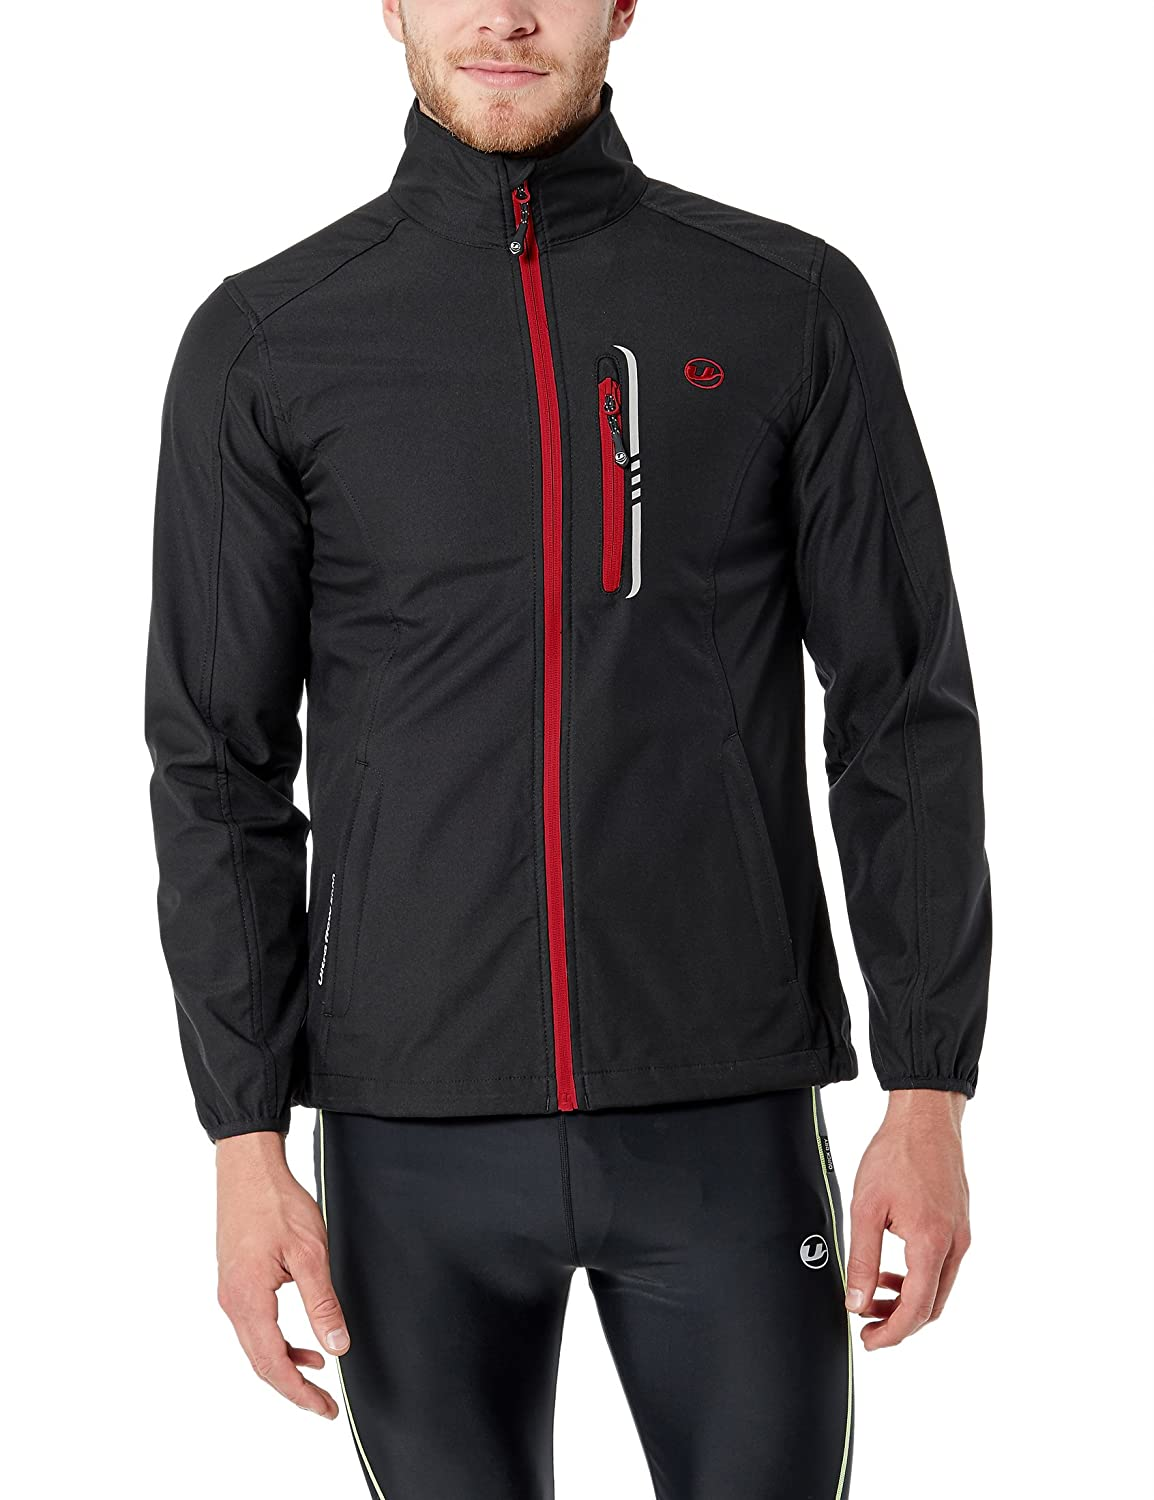 Ultrasport Softshelljacke amazon